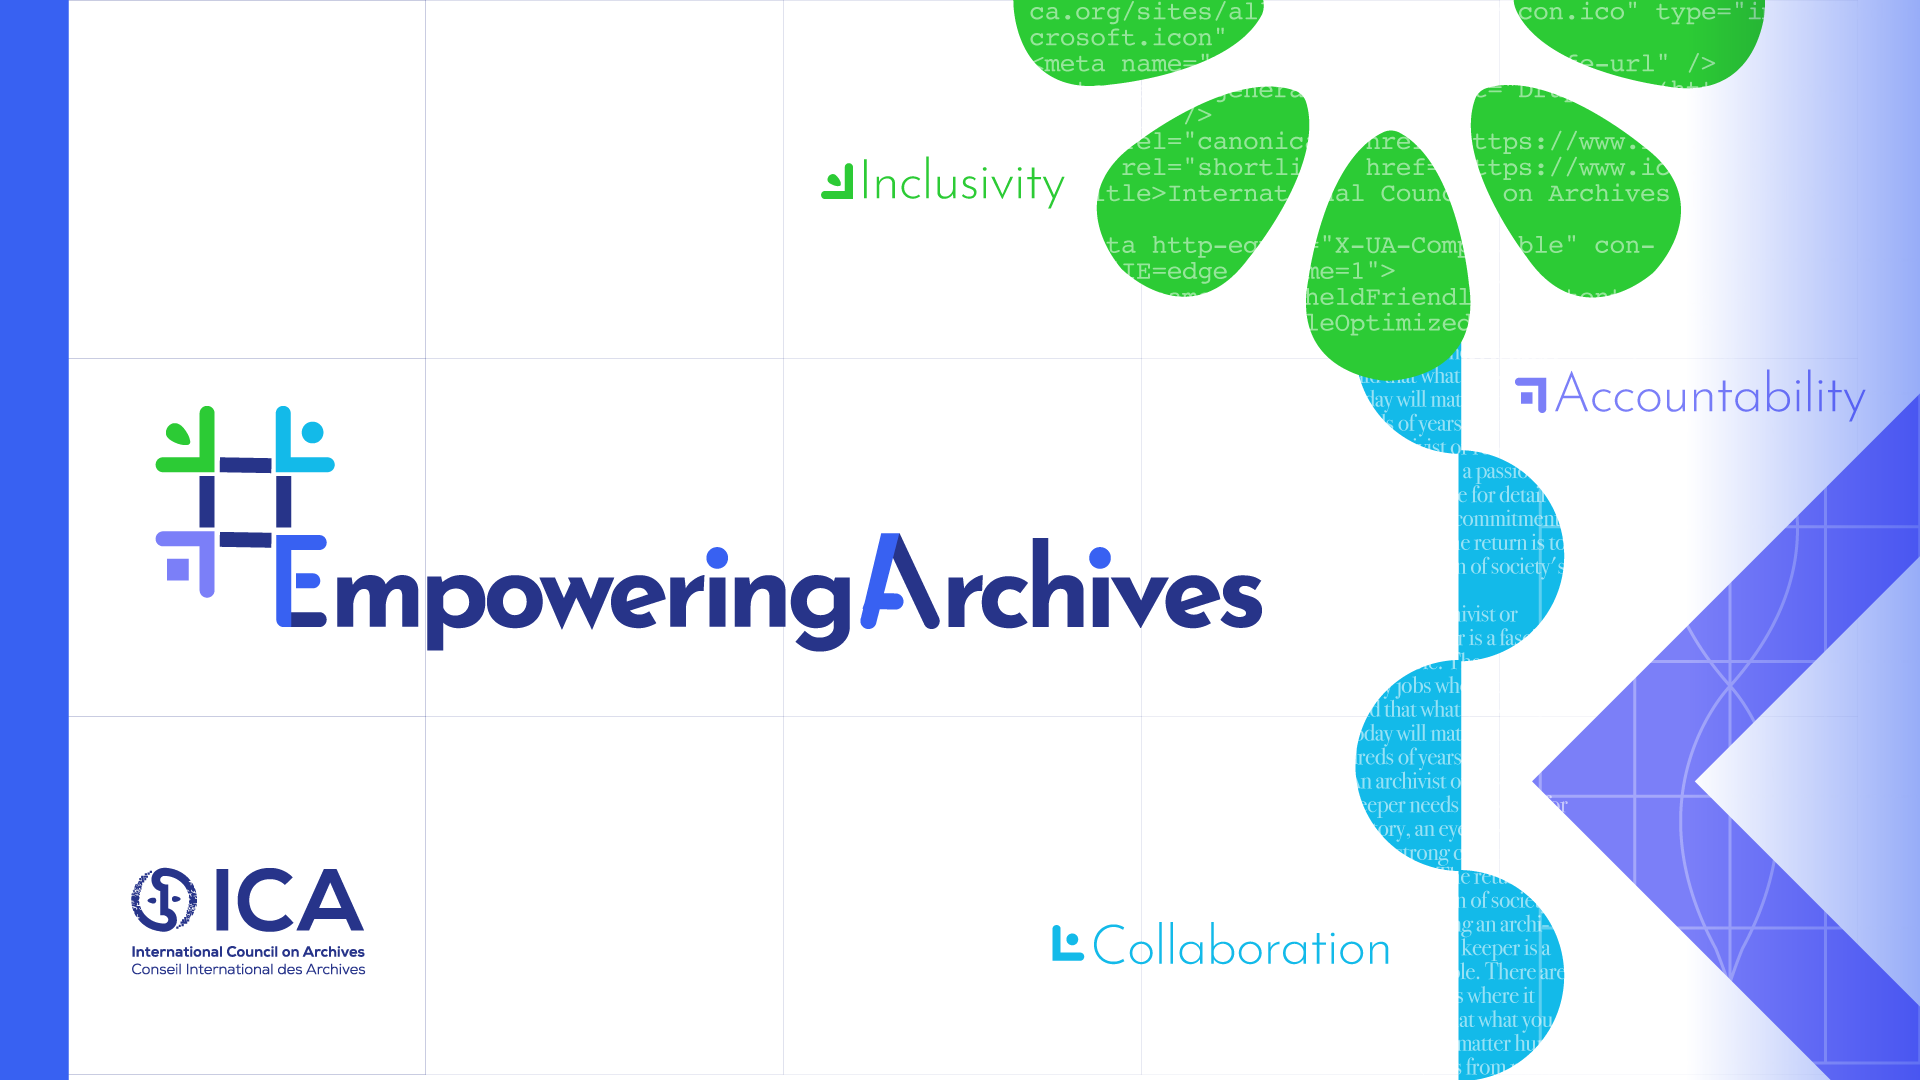 We invite you to celebrate the International Day of Archives together with archivists